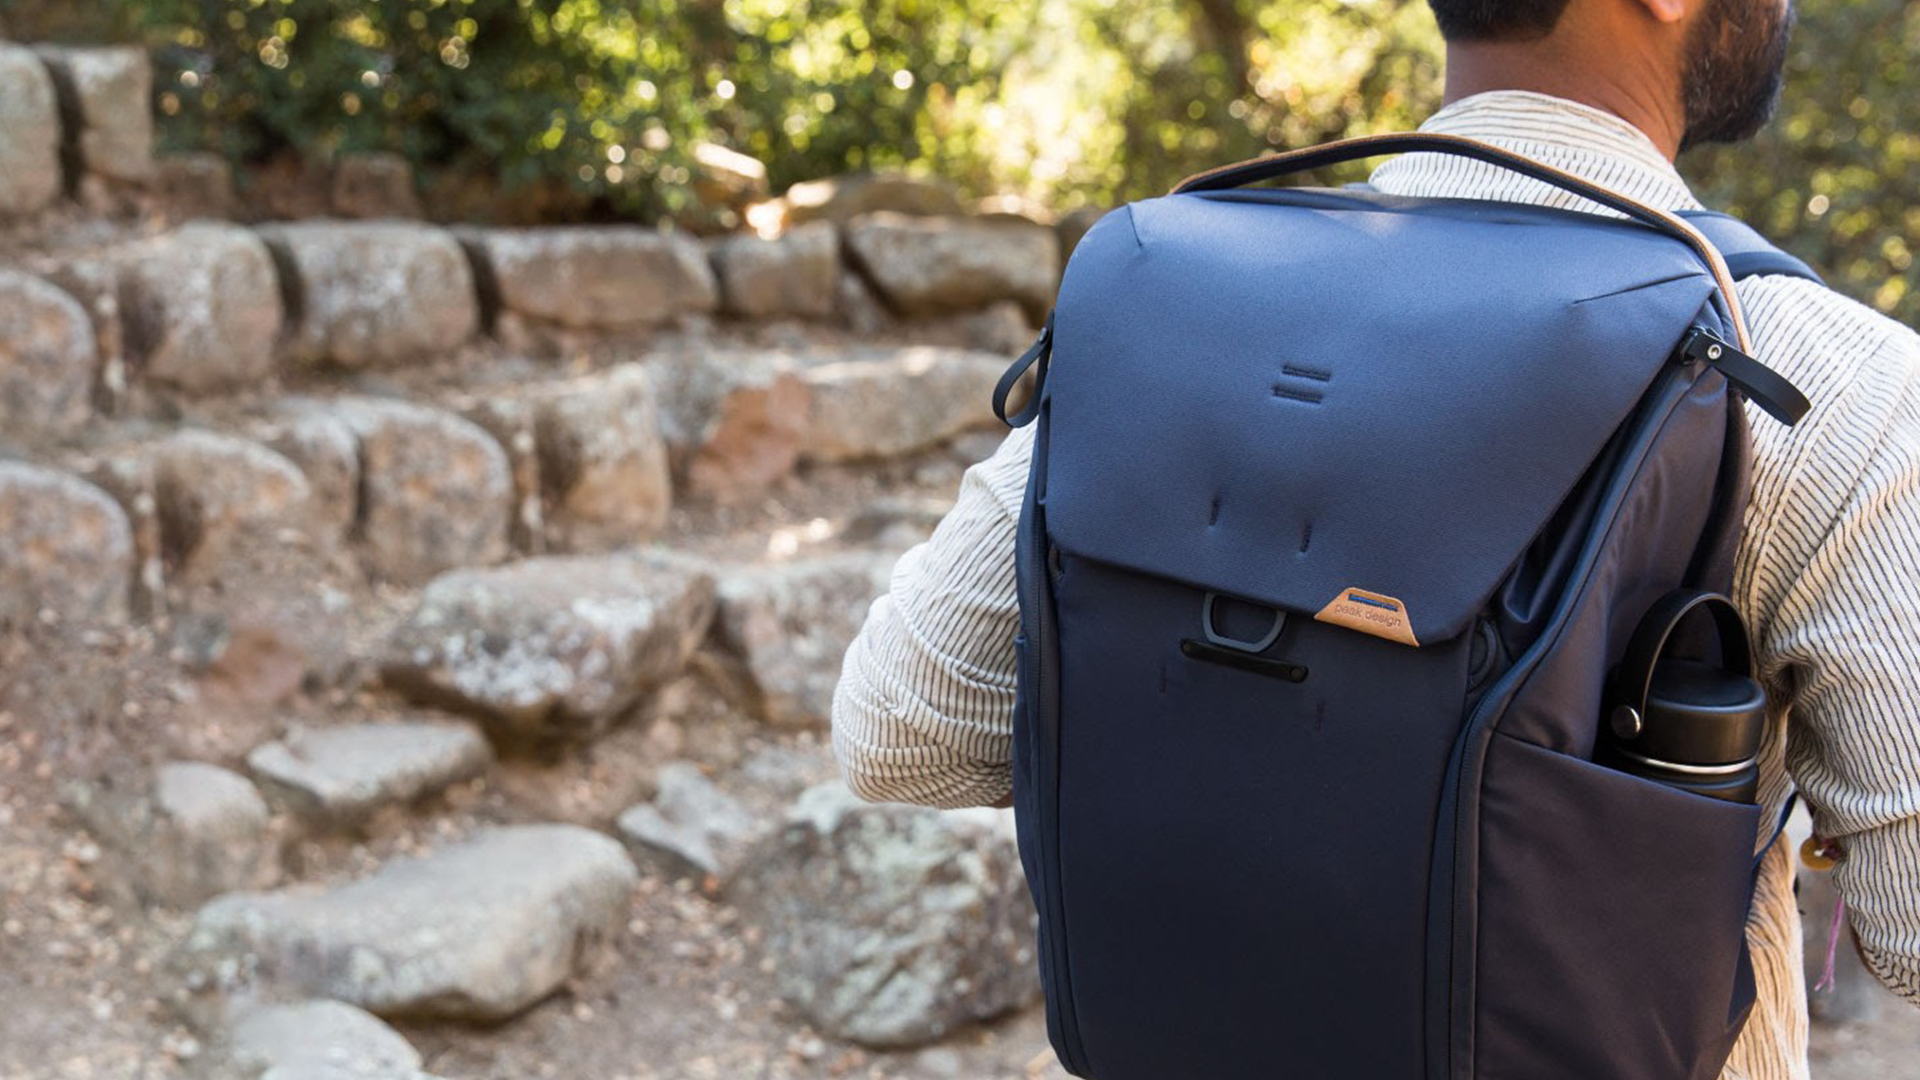 「EVERYDAY BACKPACK」の画像検索結果